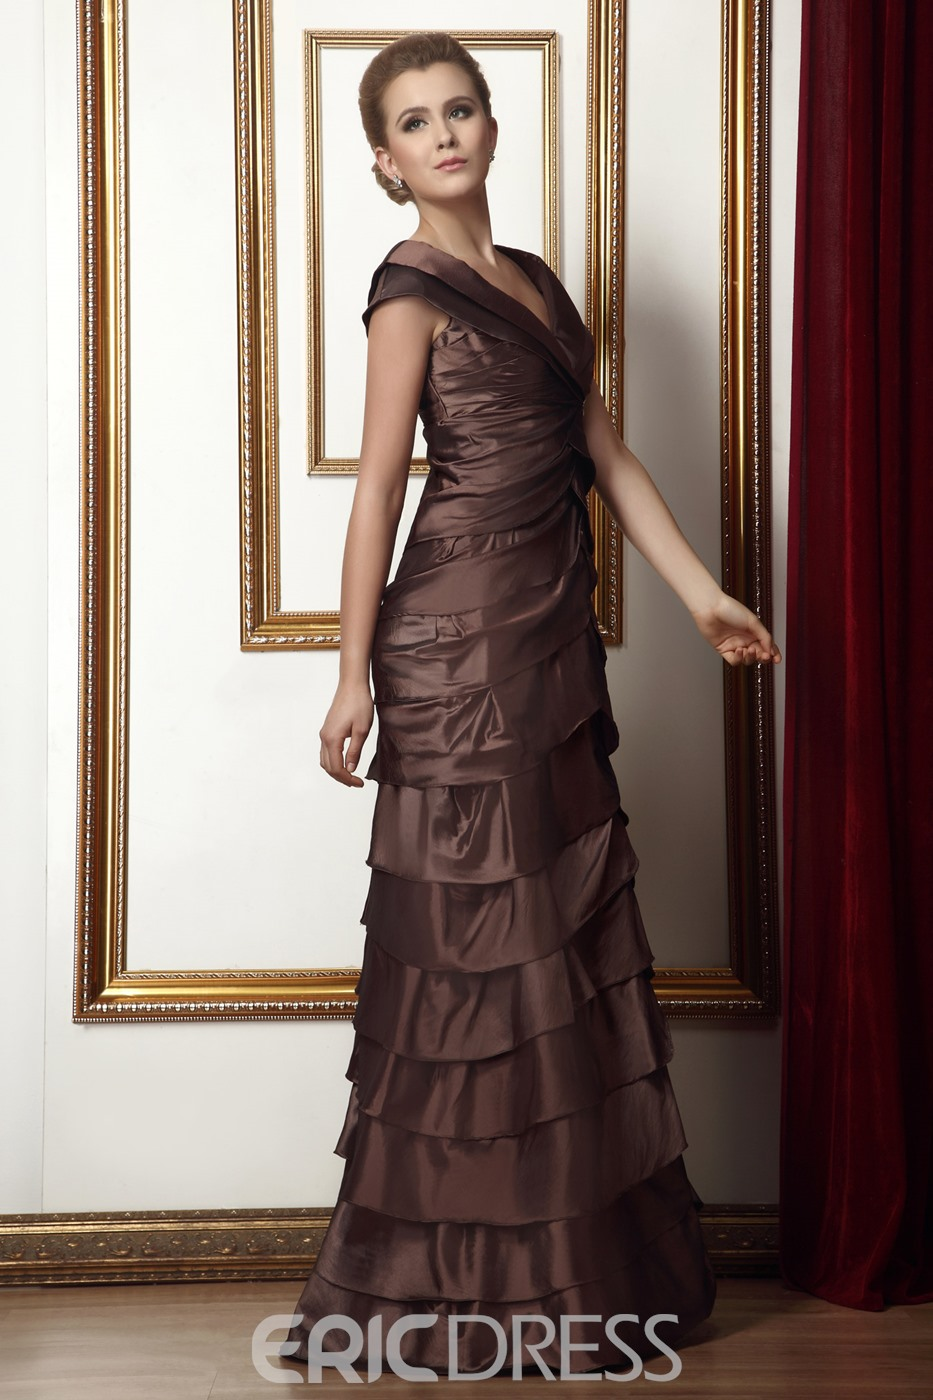 Unique Tiered Crystal Floral Pin A-Line V-Neck Floor-Length Alina's Mother of the Bride Dress With Jacket/Shawl